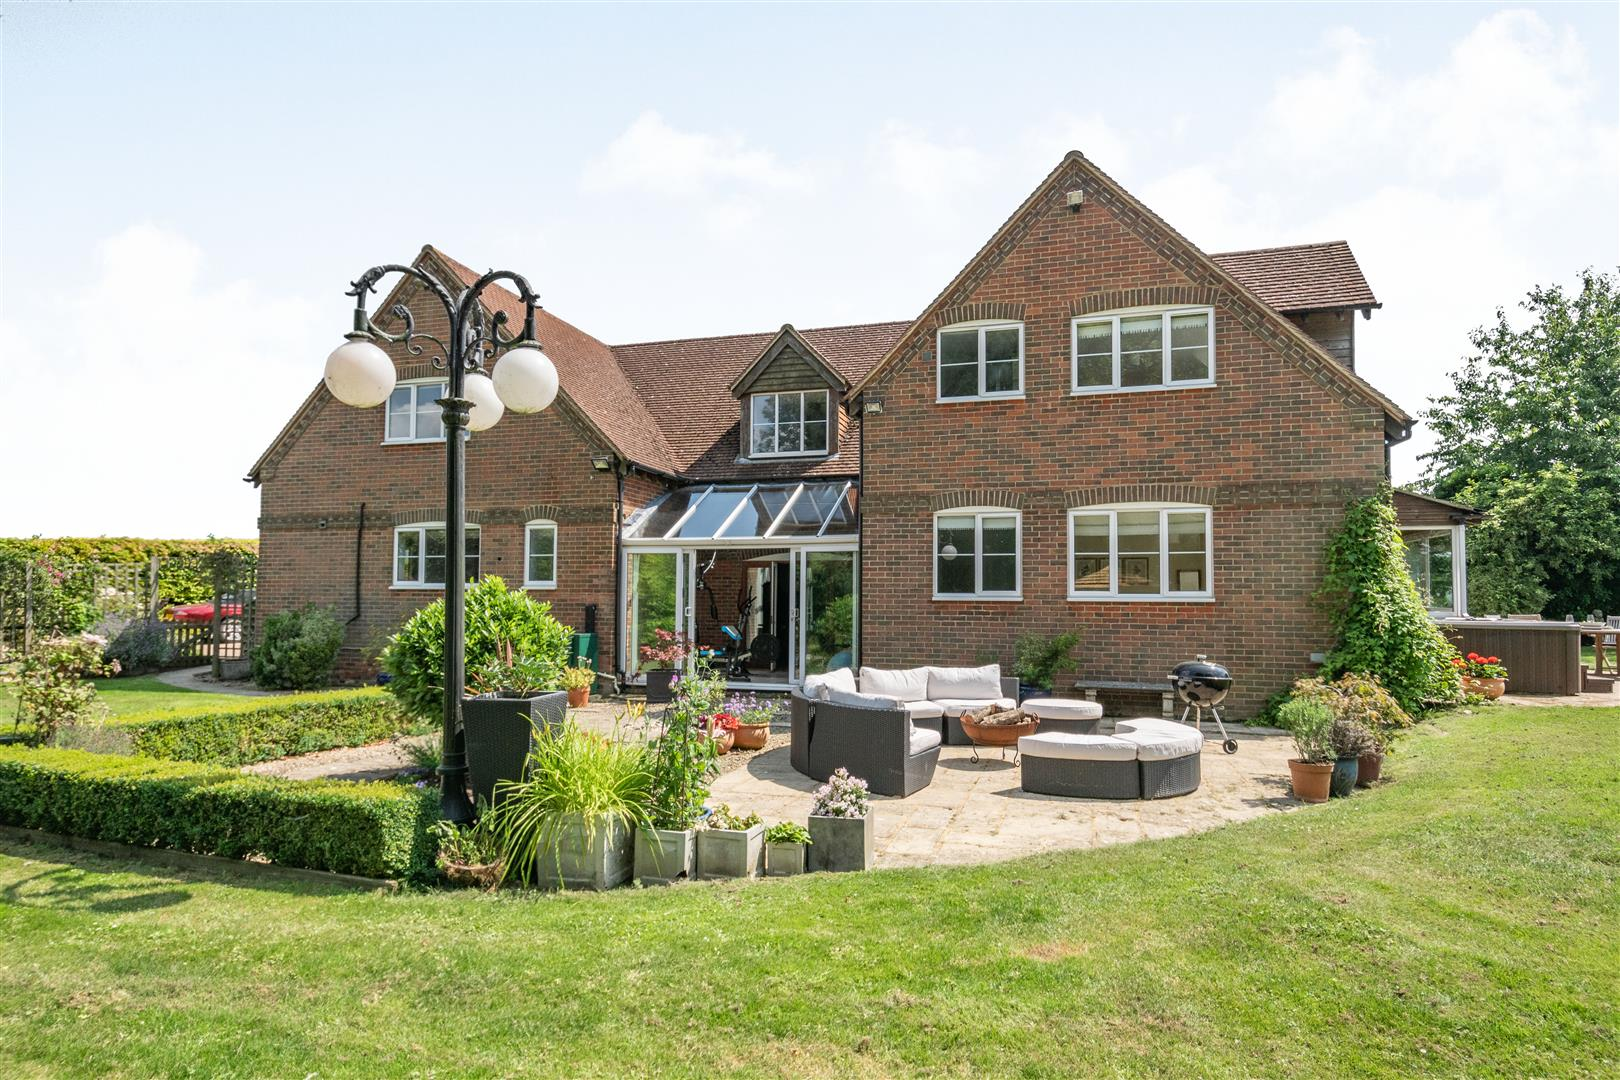 Property for sale near Oxford